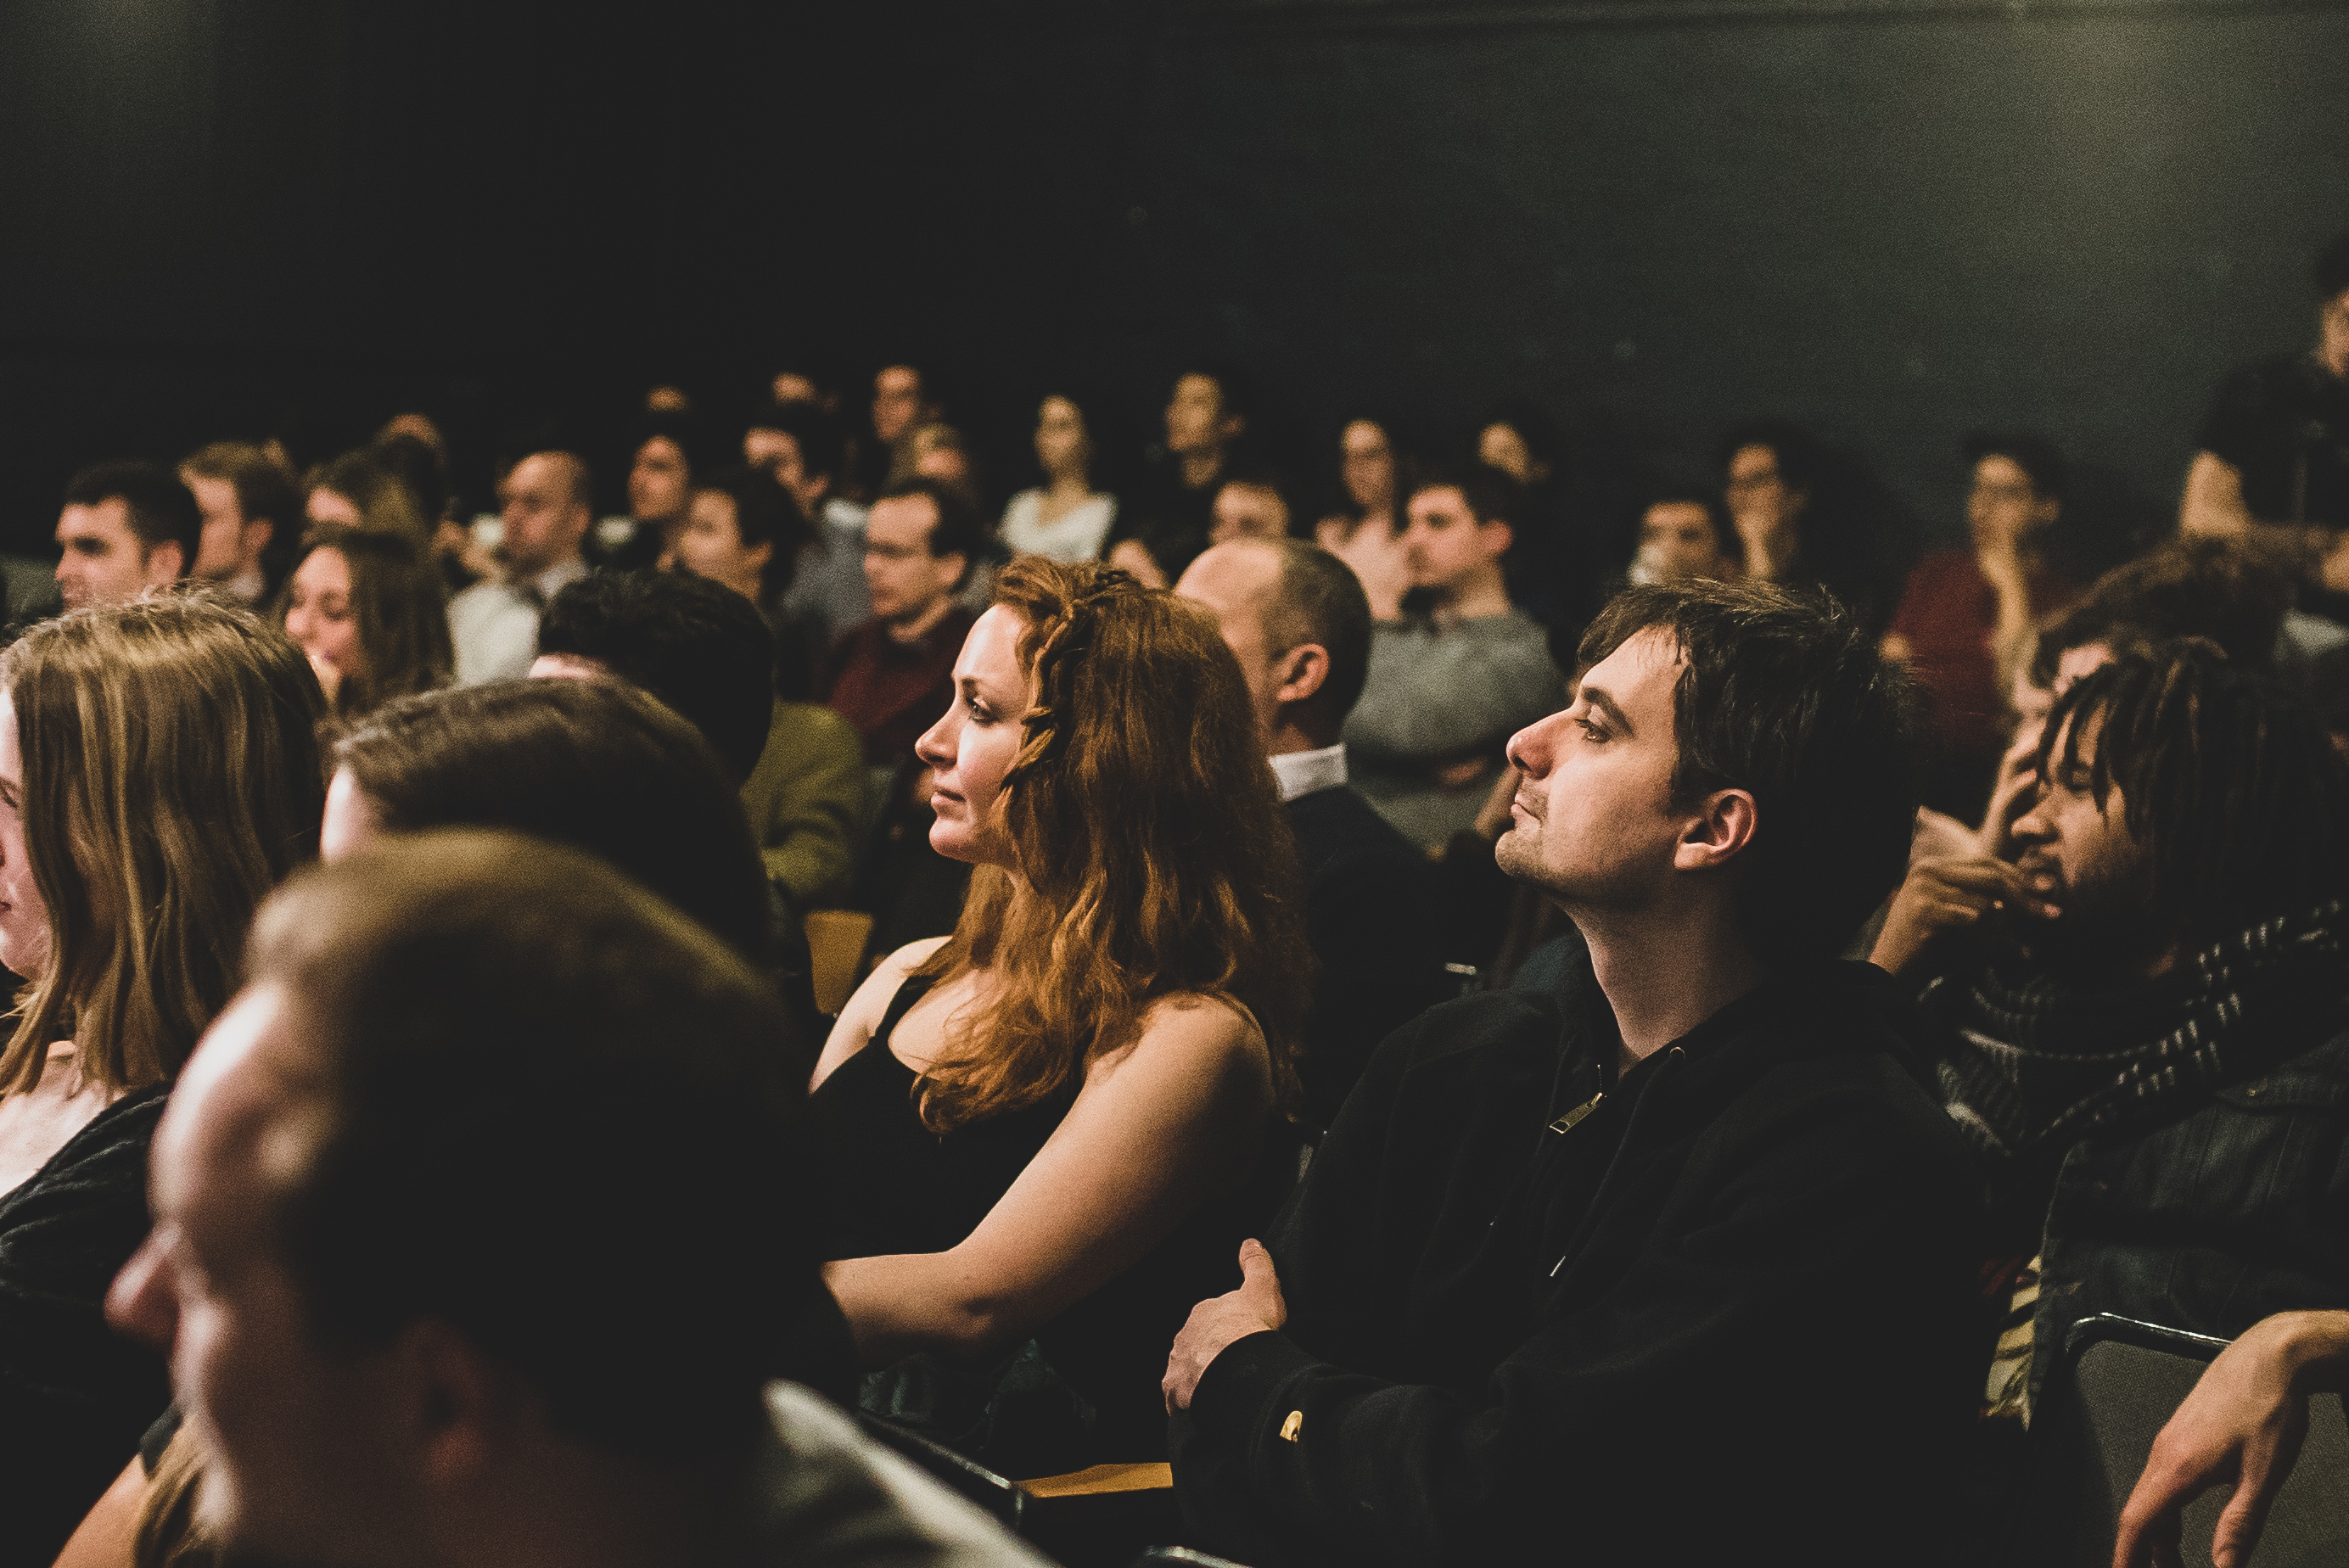 LFS Connects audience